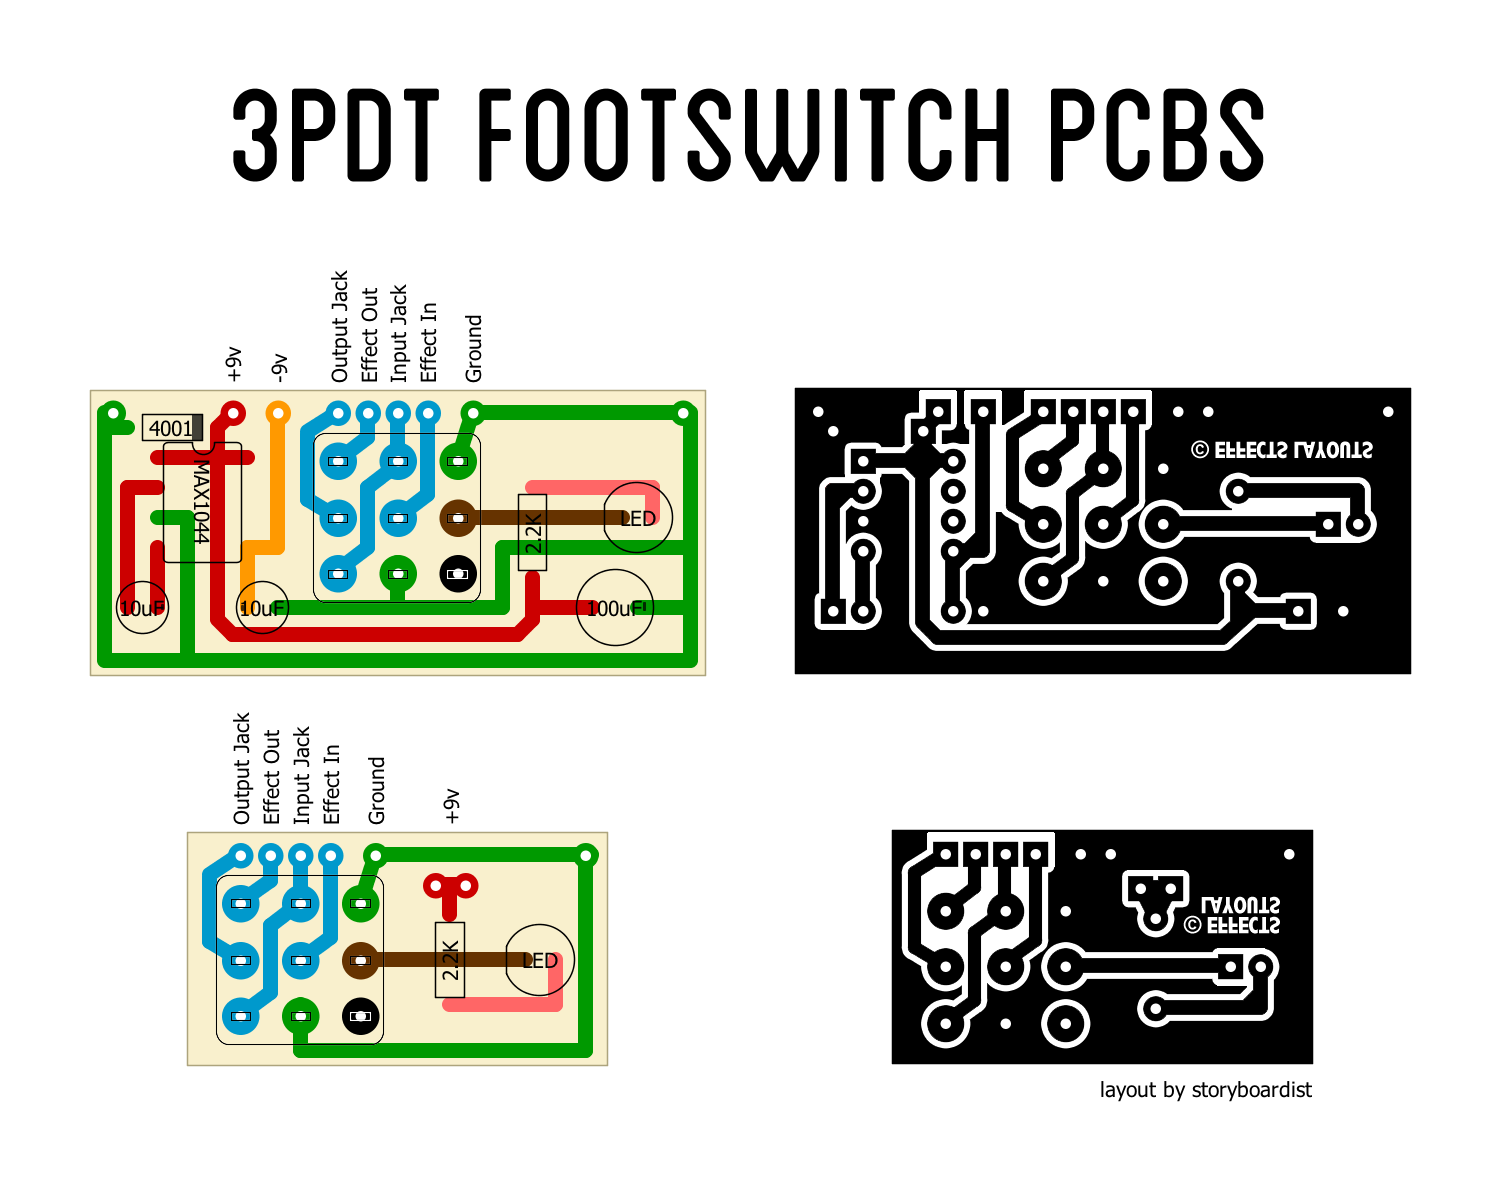 6e4c1a71ead13435ef1f6062c137e425 3pdt guitar pedal footswitch wiring pcb schematics google search 3pdt switch wiring diagram at mr168.co